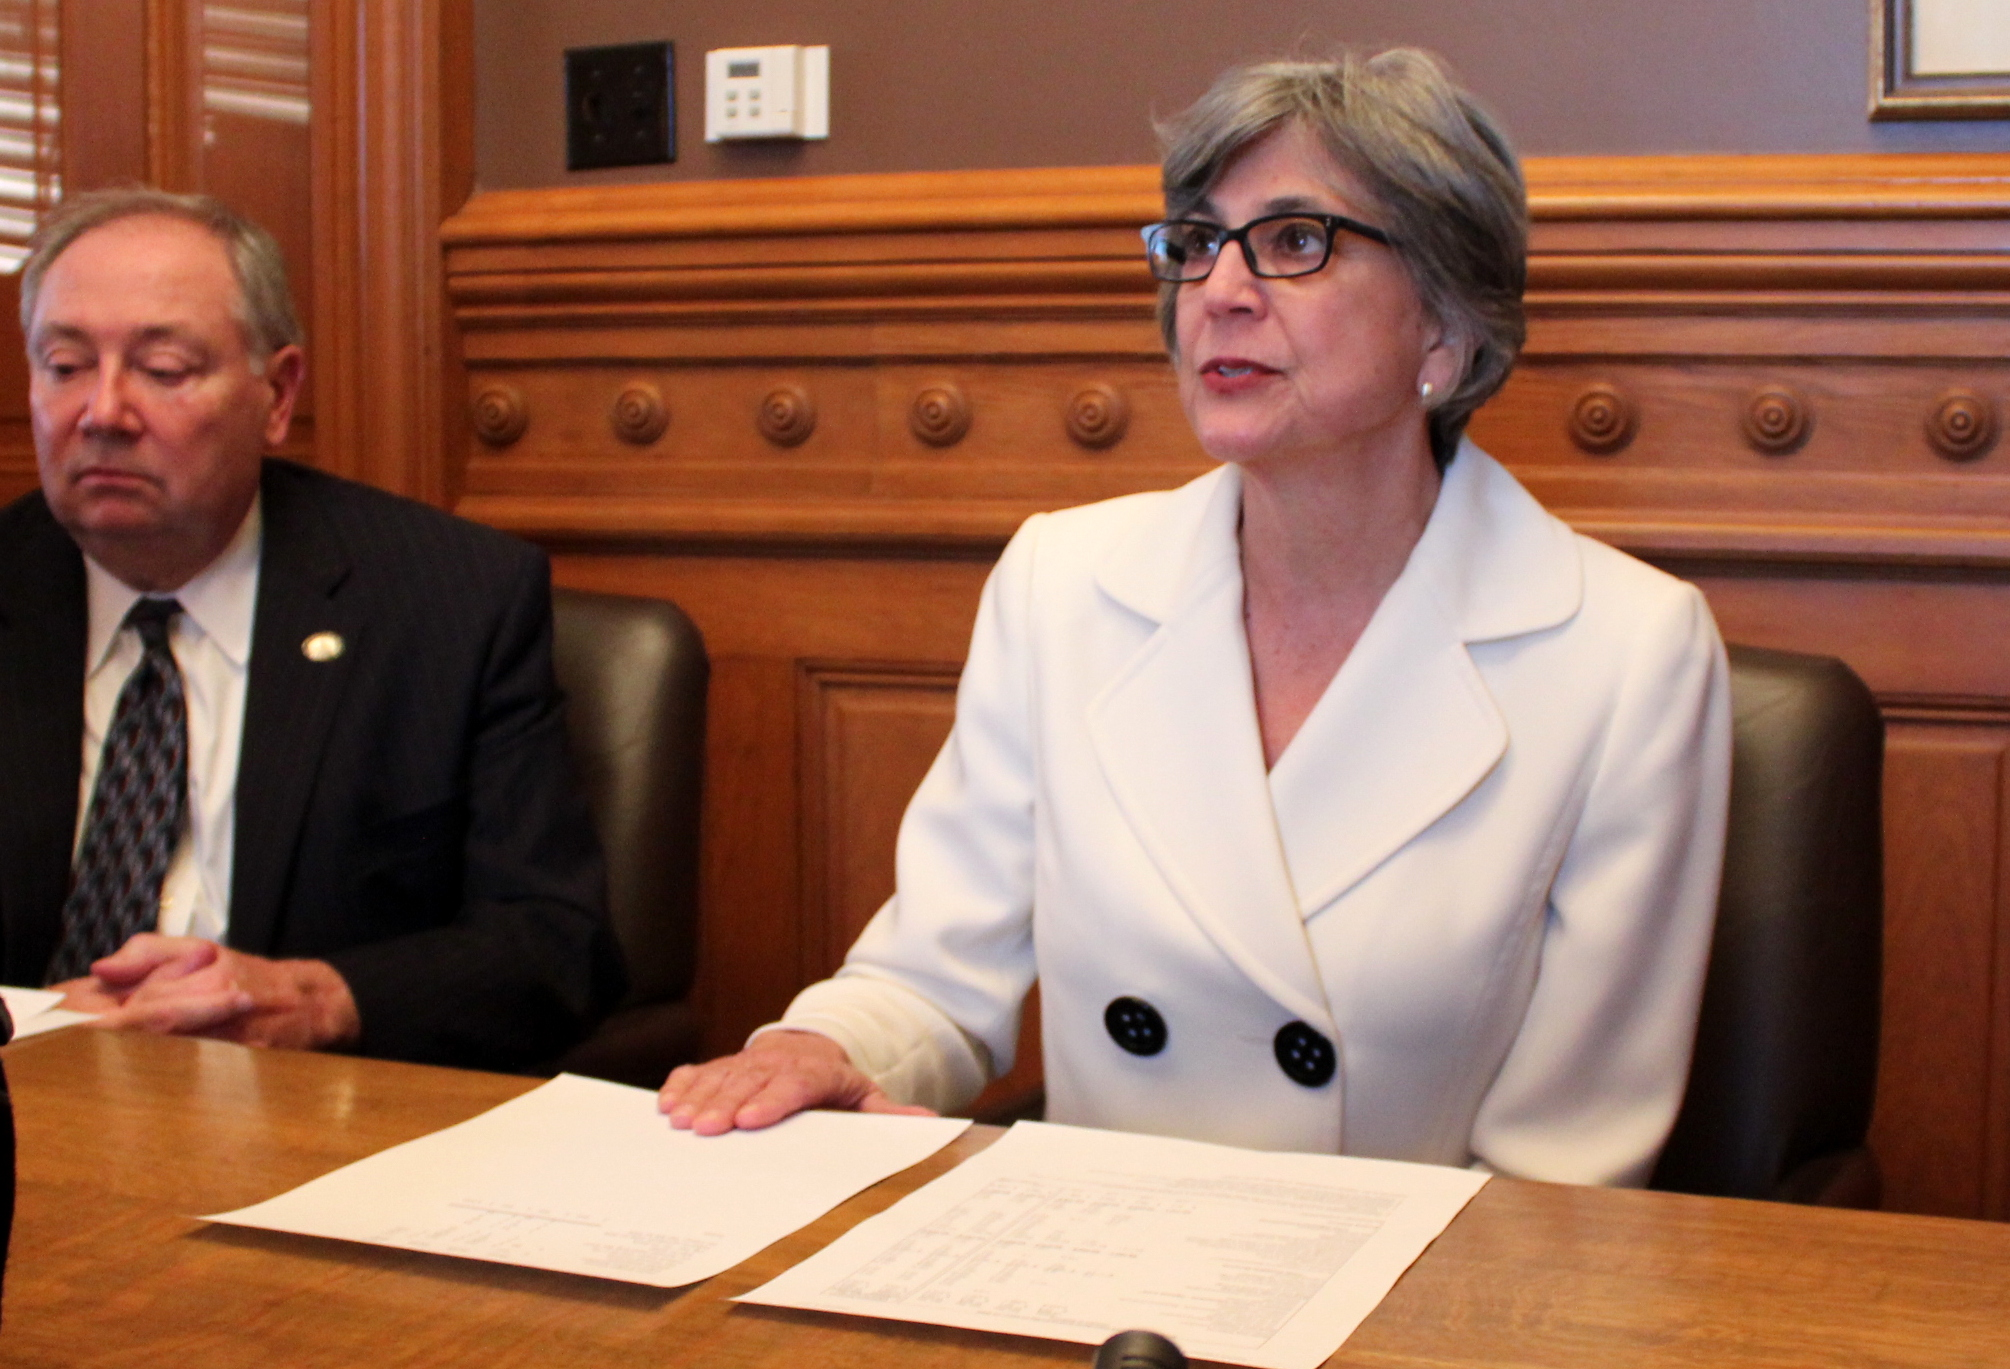 Senate President Susan Wagle speaking about the tax and budget plans Tuesday. (Photo by Stephen Koranda)